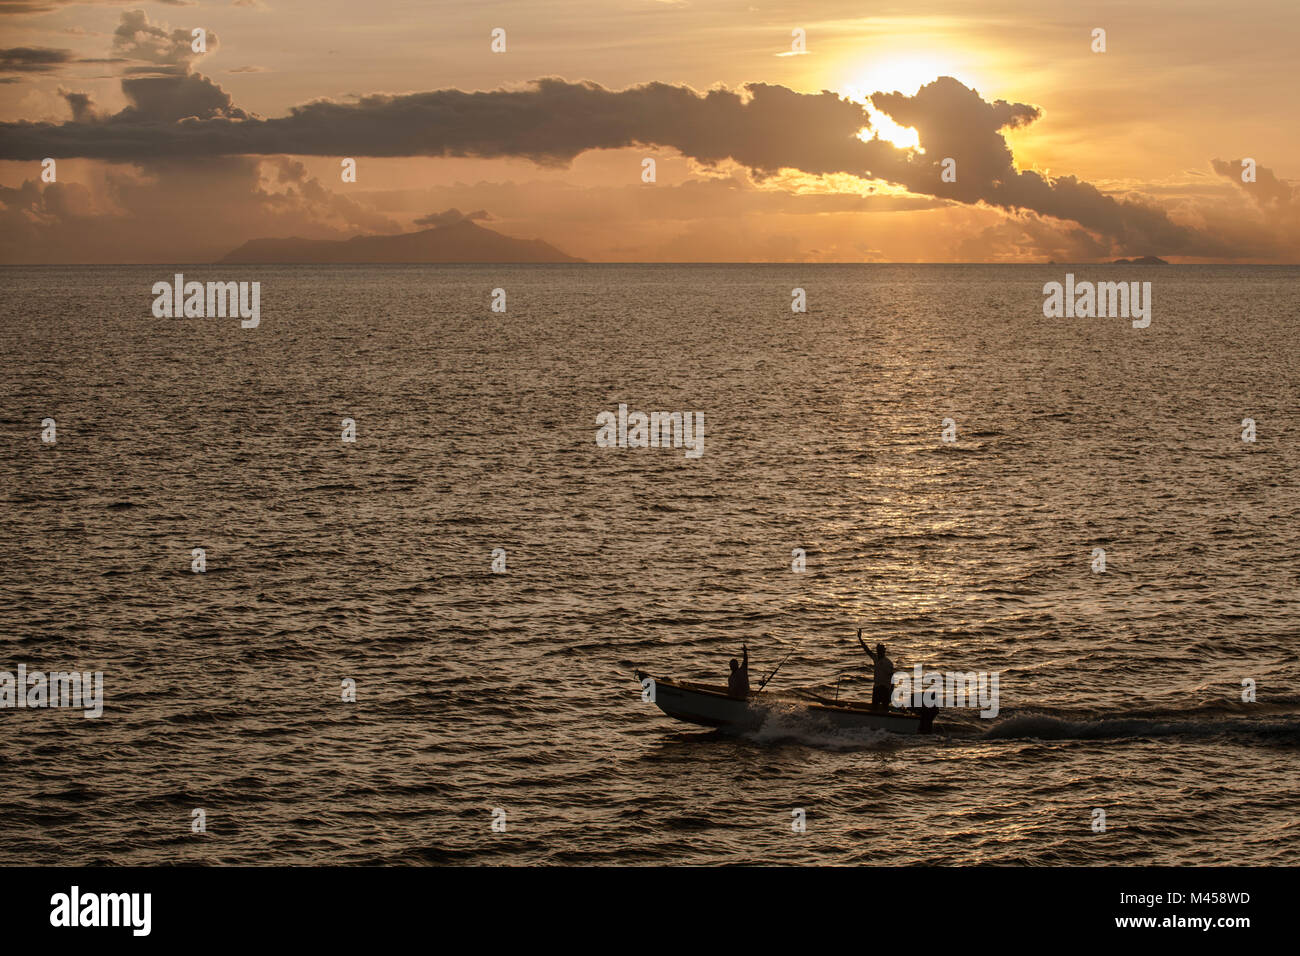 Fisherman wave as they pass on their boat Praslin, the Seychelles.  Credit: Euan Cherry - Stock Image